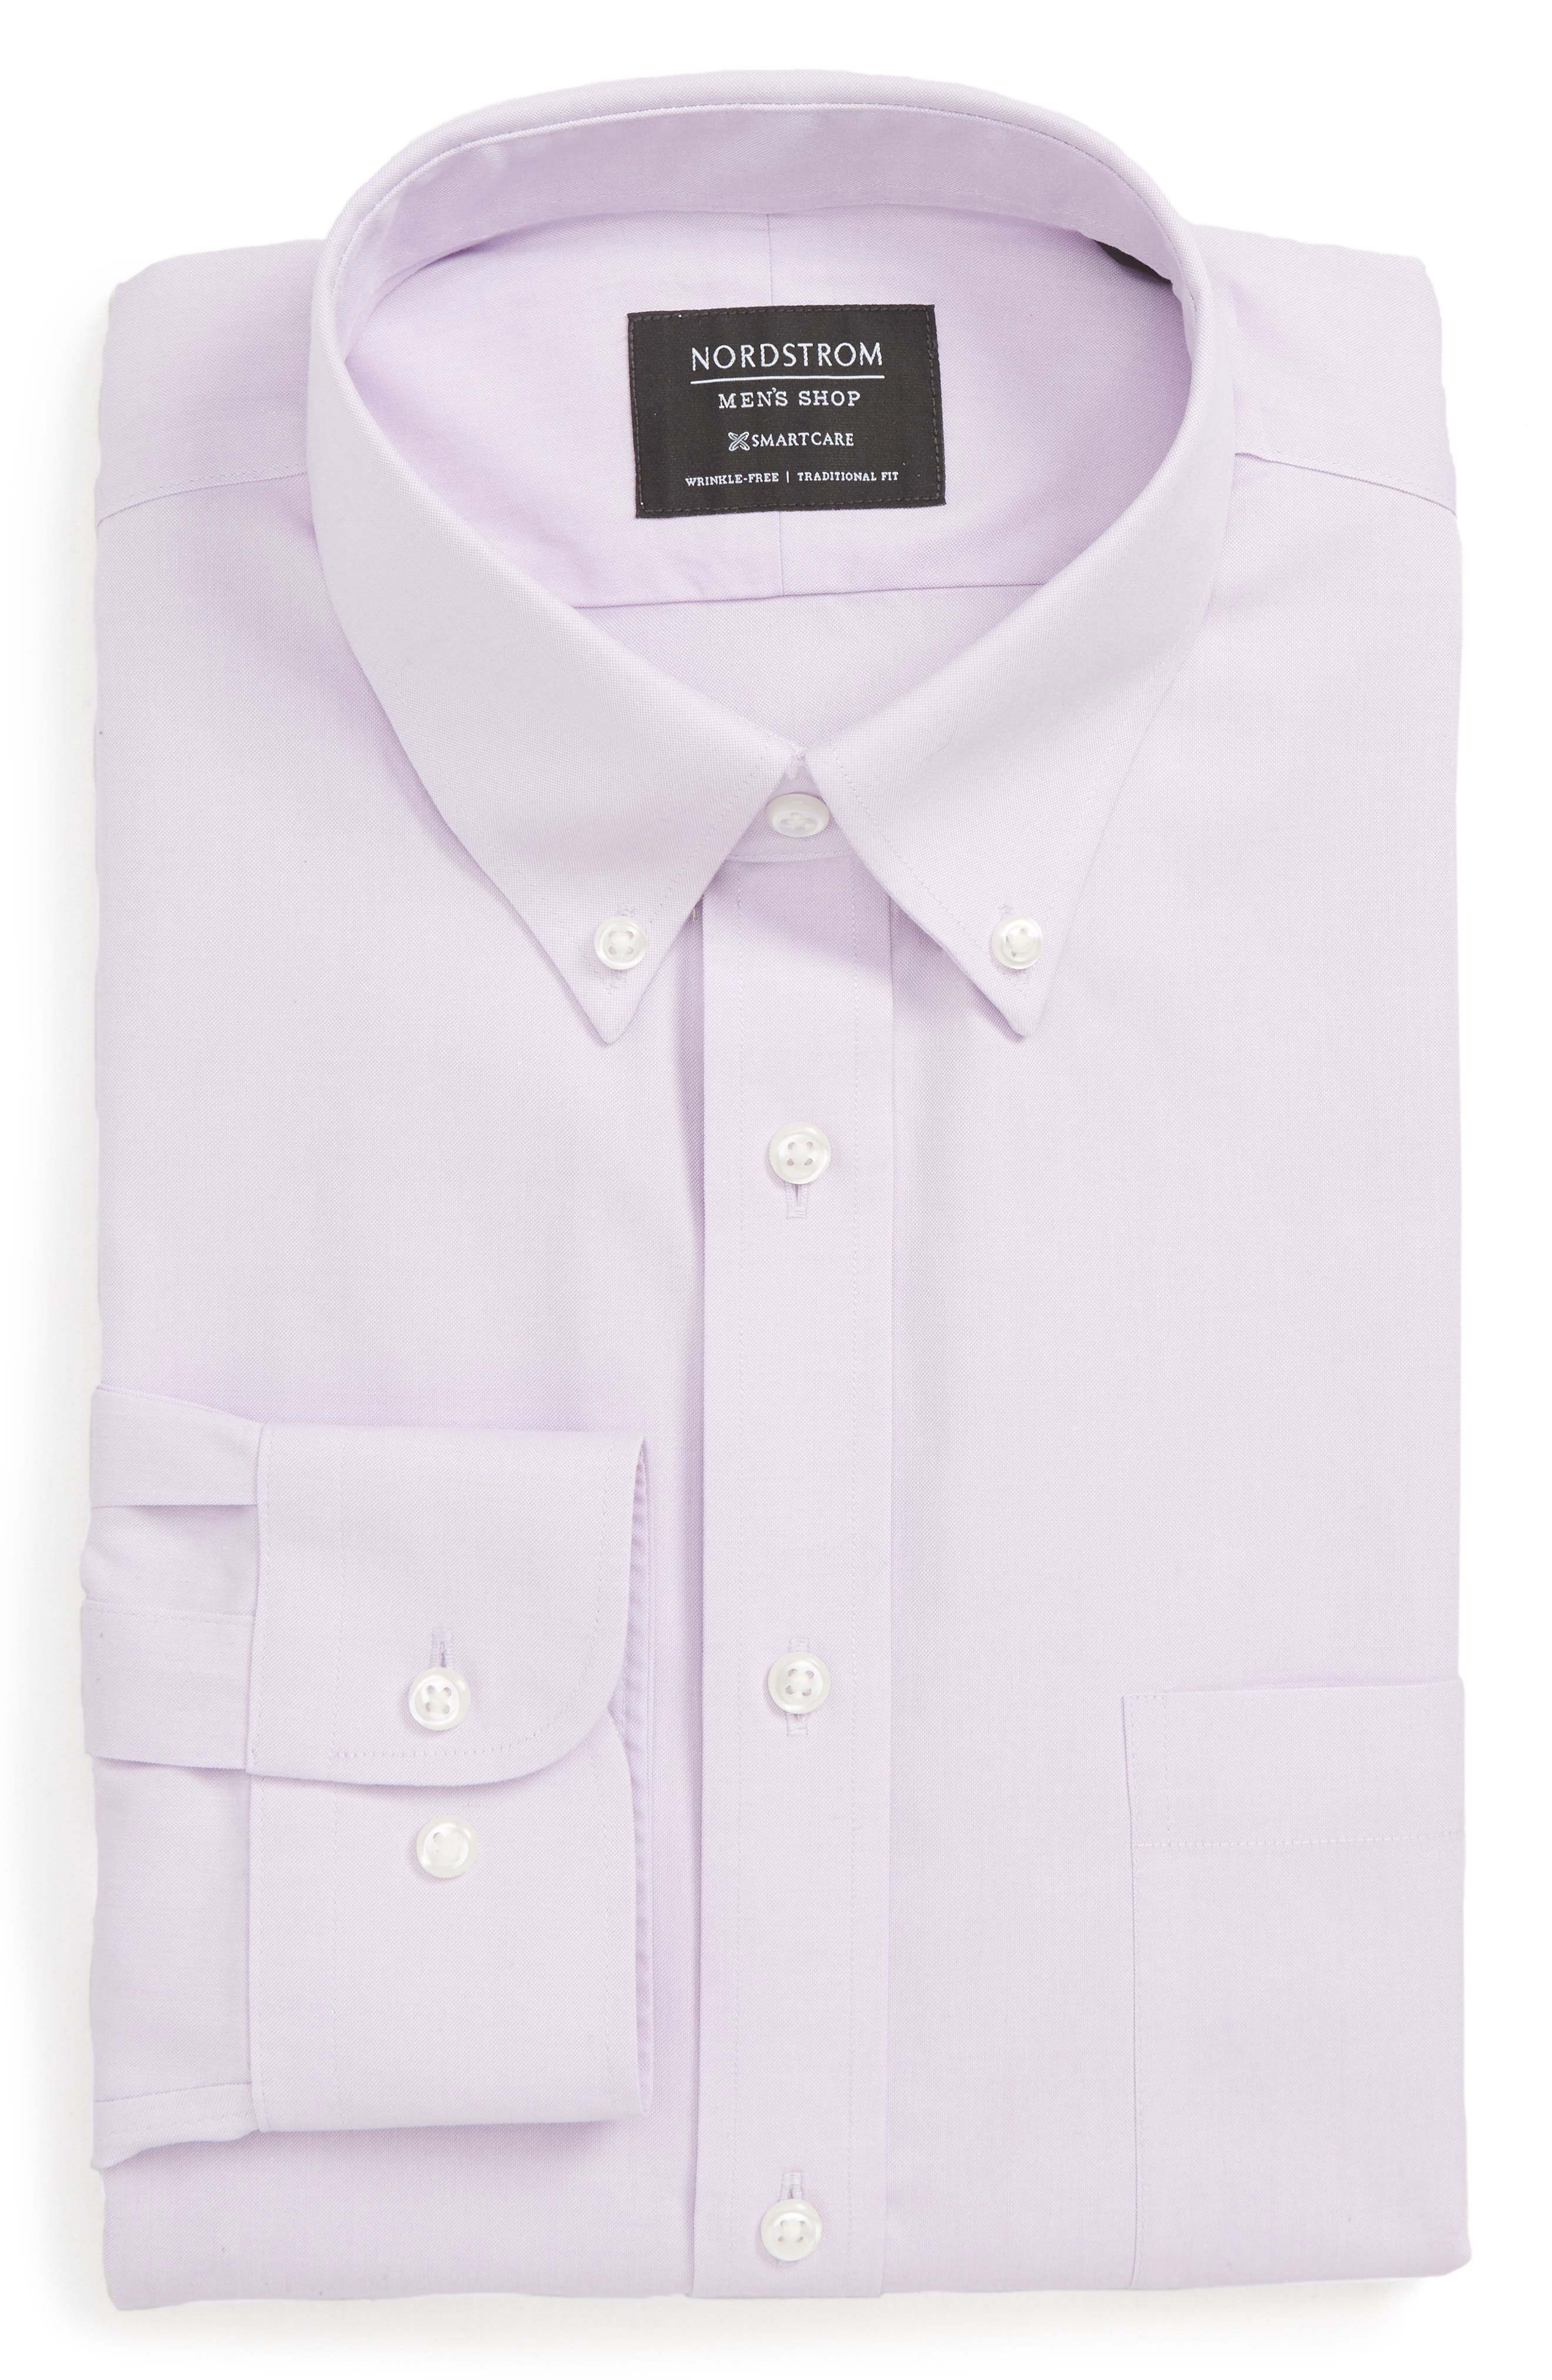 Nordstrom Shop Smartcare(TM) Traditional Fit Pinpoint Dress Shirt, 5.5 34/35 - Purple